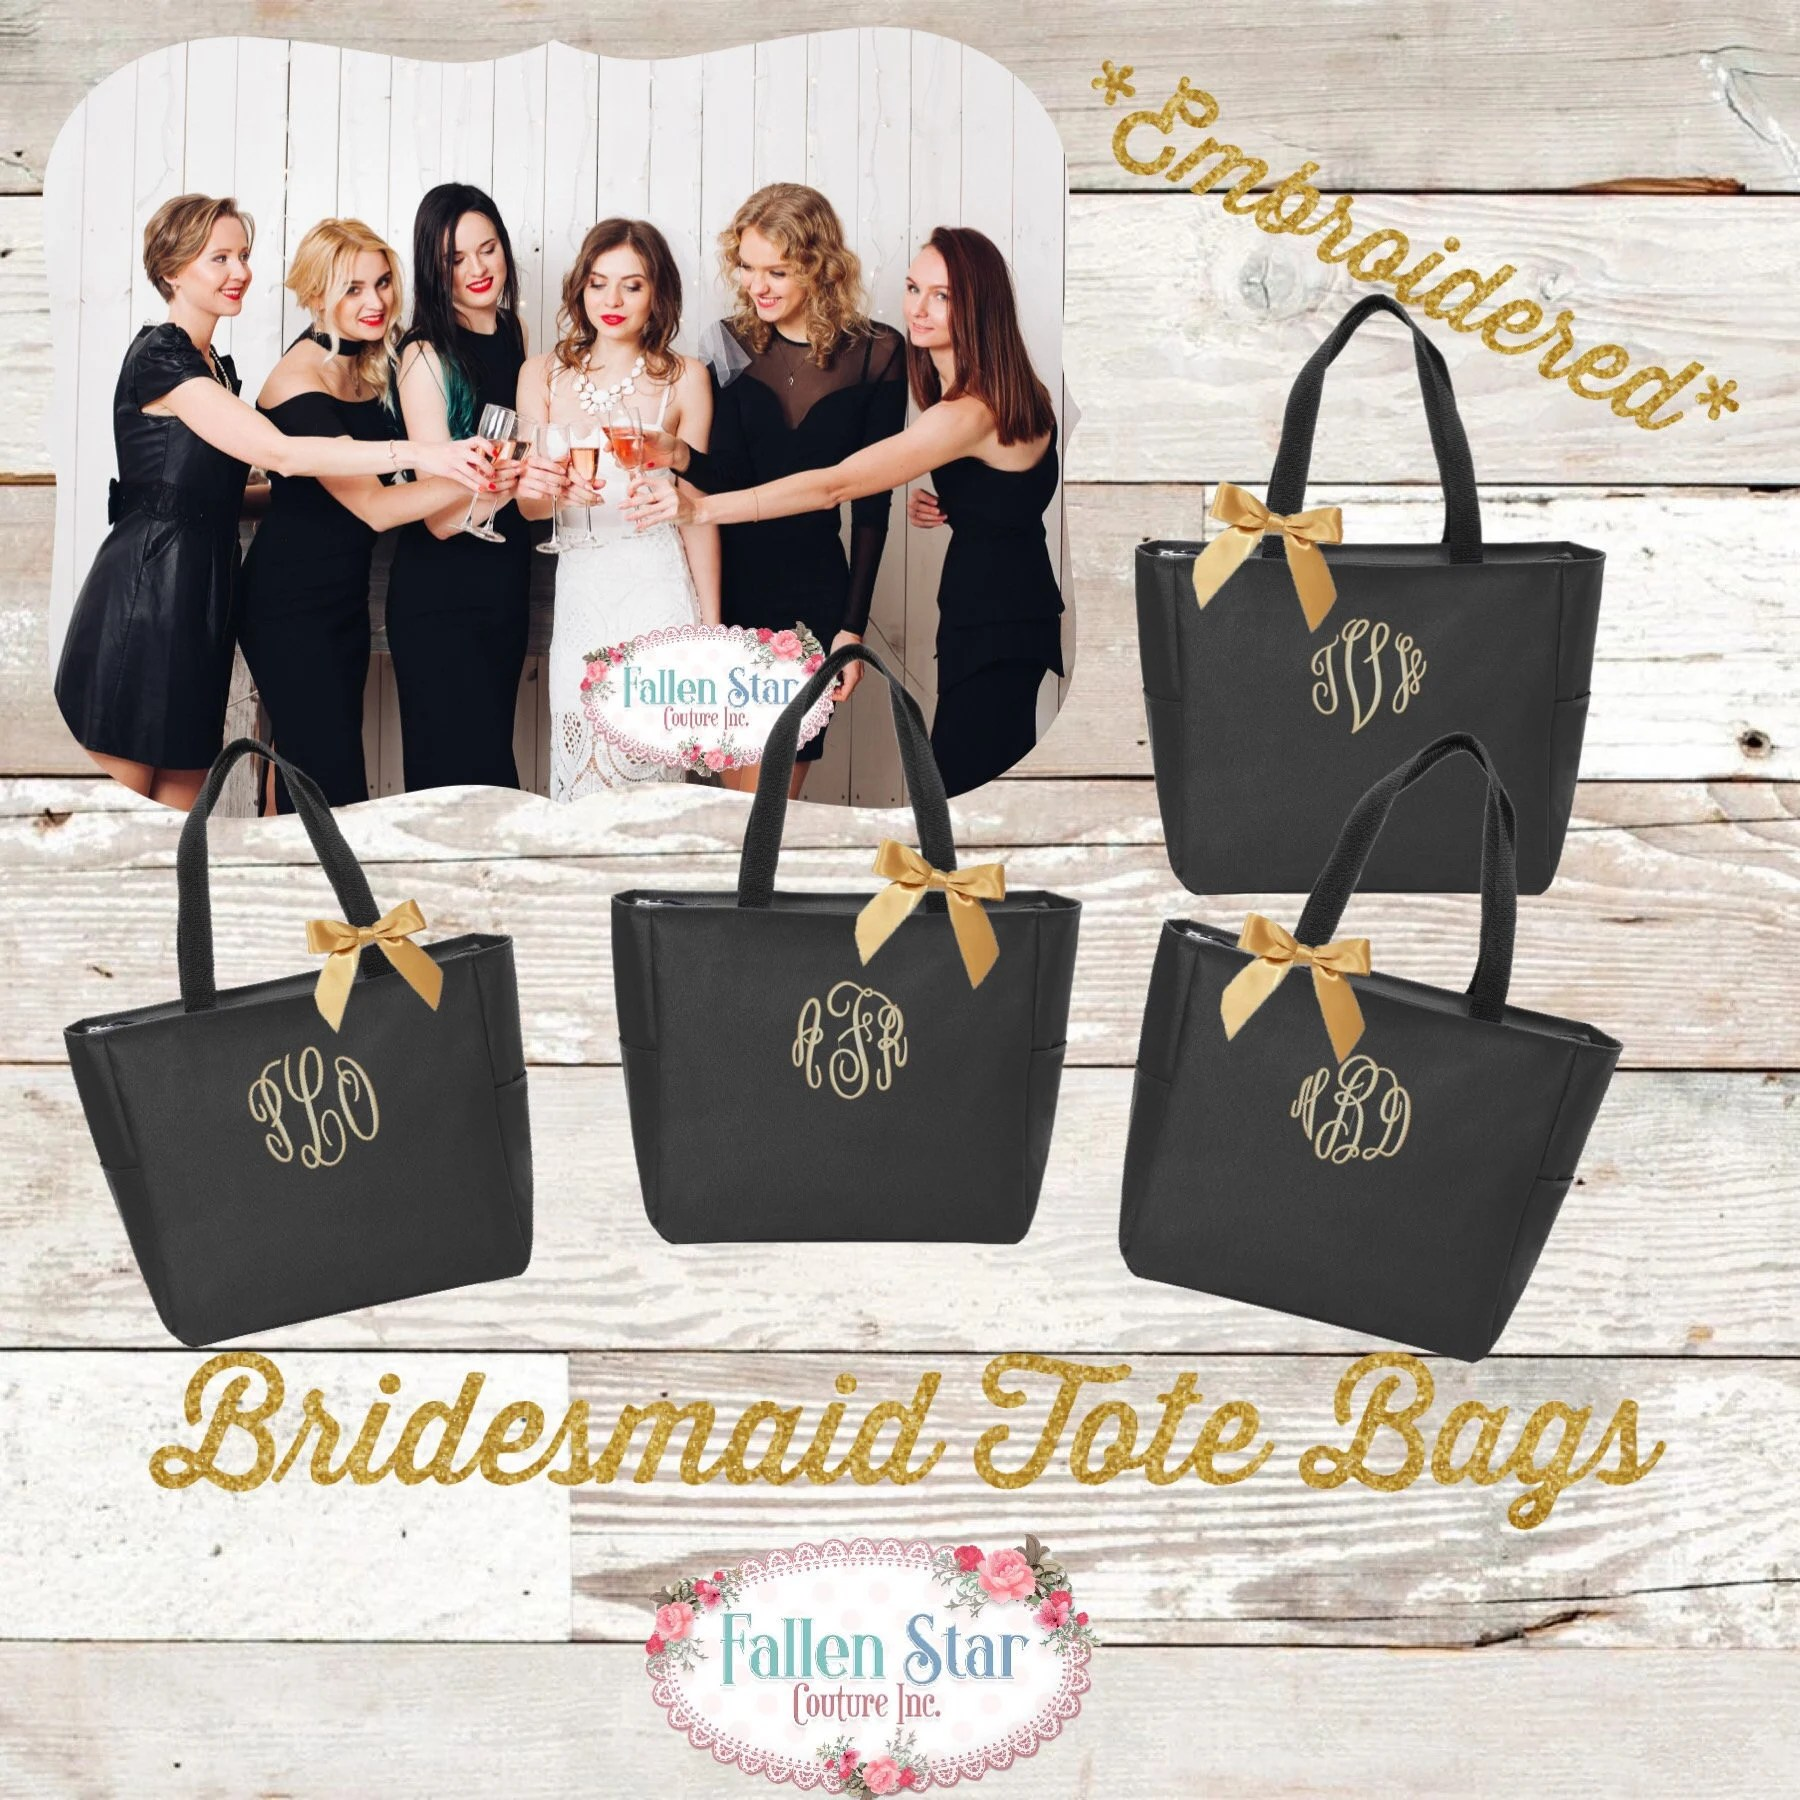 bridesmaid zipper tote bags